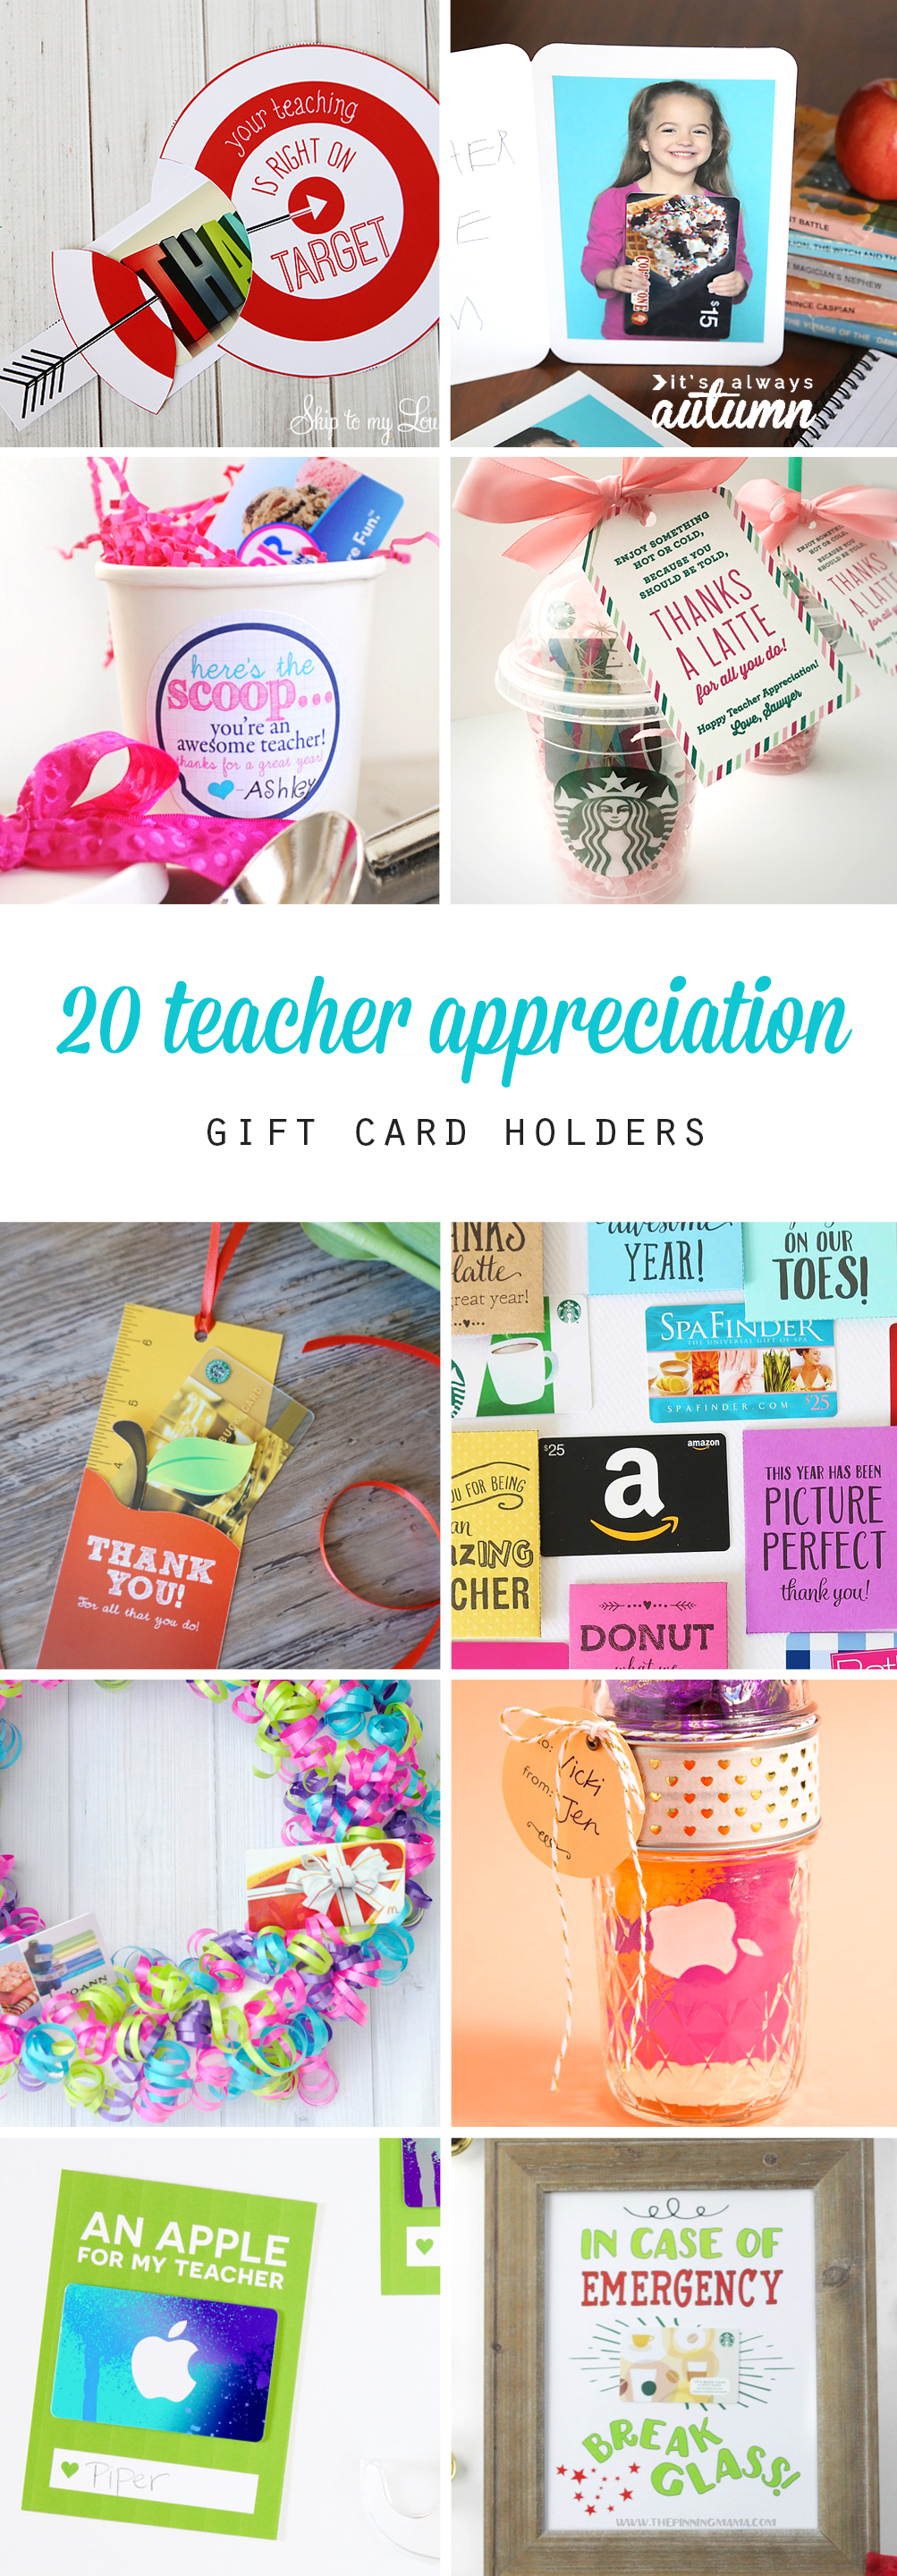 Collage of teacher appreciation gift card holders